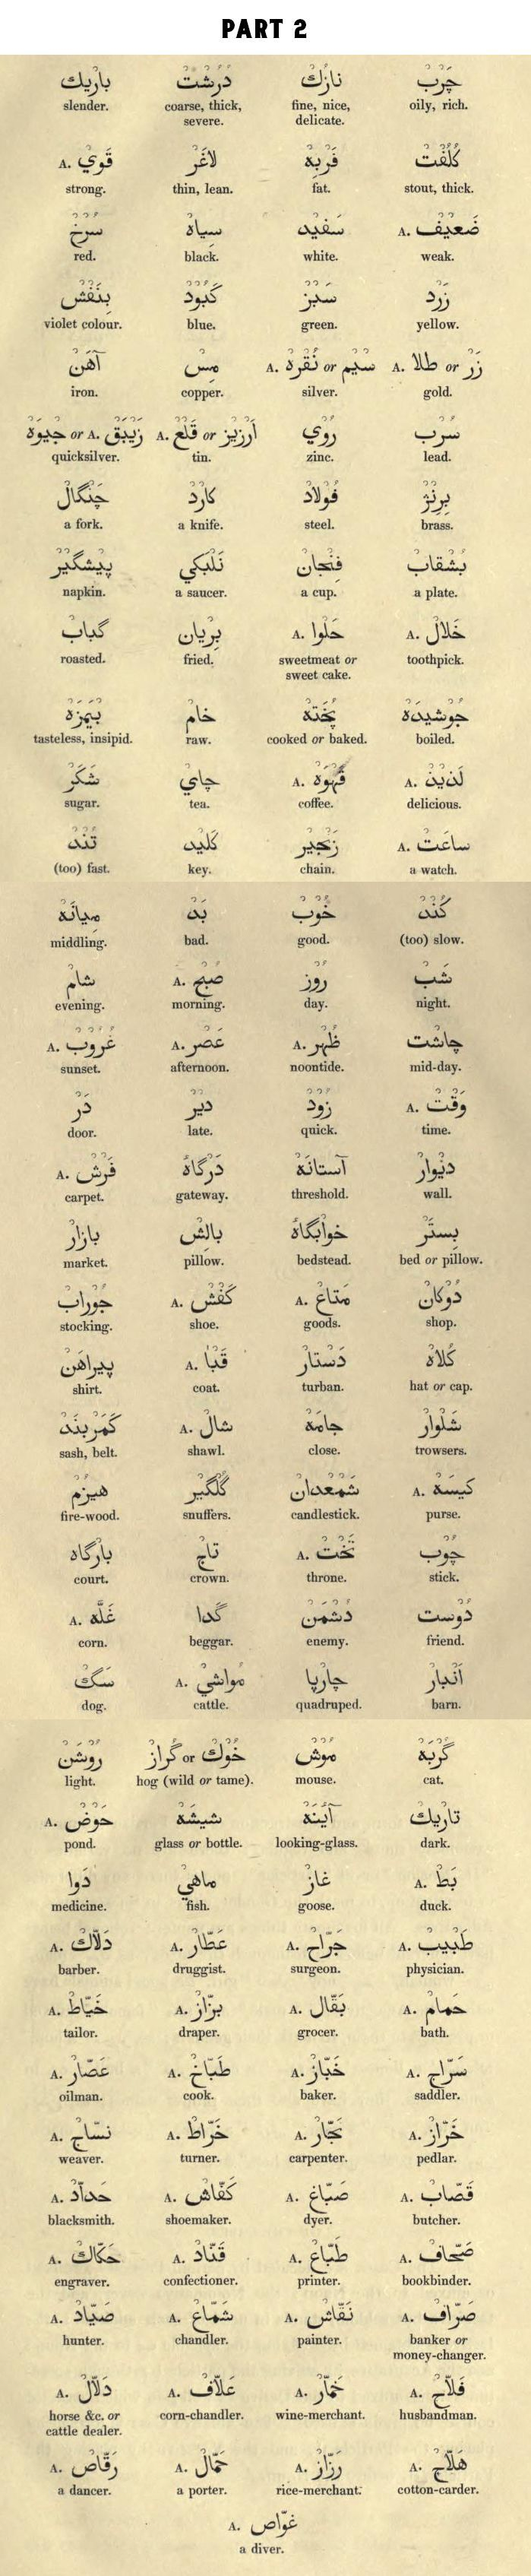 """Part 2 of Significant Words, From """"A grammar of the Persian language. To which are subjoined several dialogues; with an alphabetical list of the English and Persian terms of grammar, and an appendix on the use of Arabic words"""" #learnarabiclanguage"""